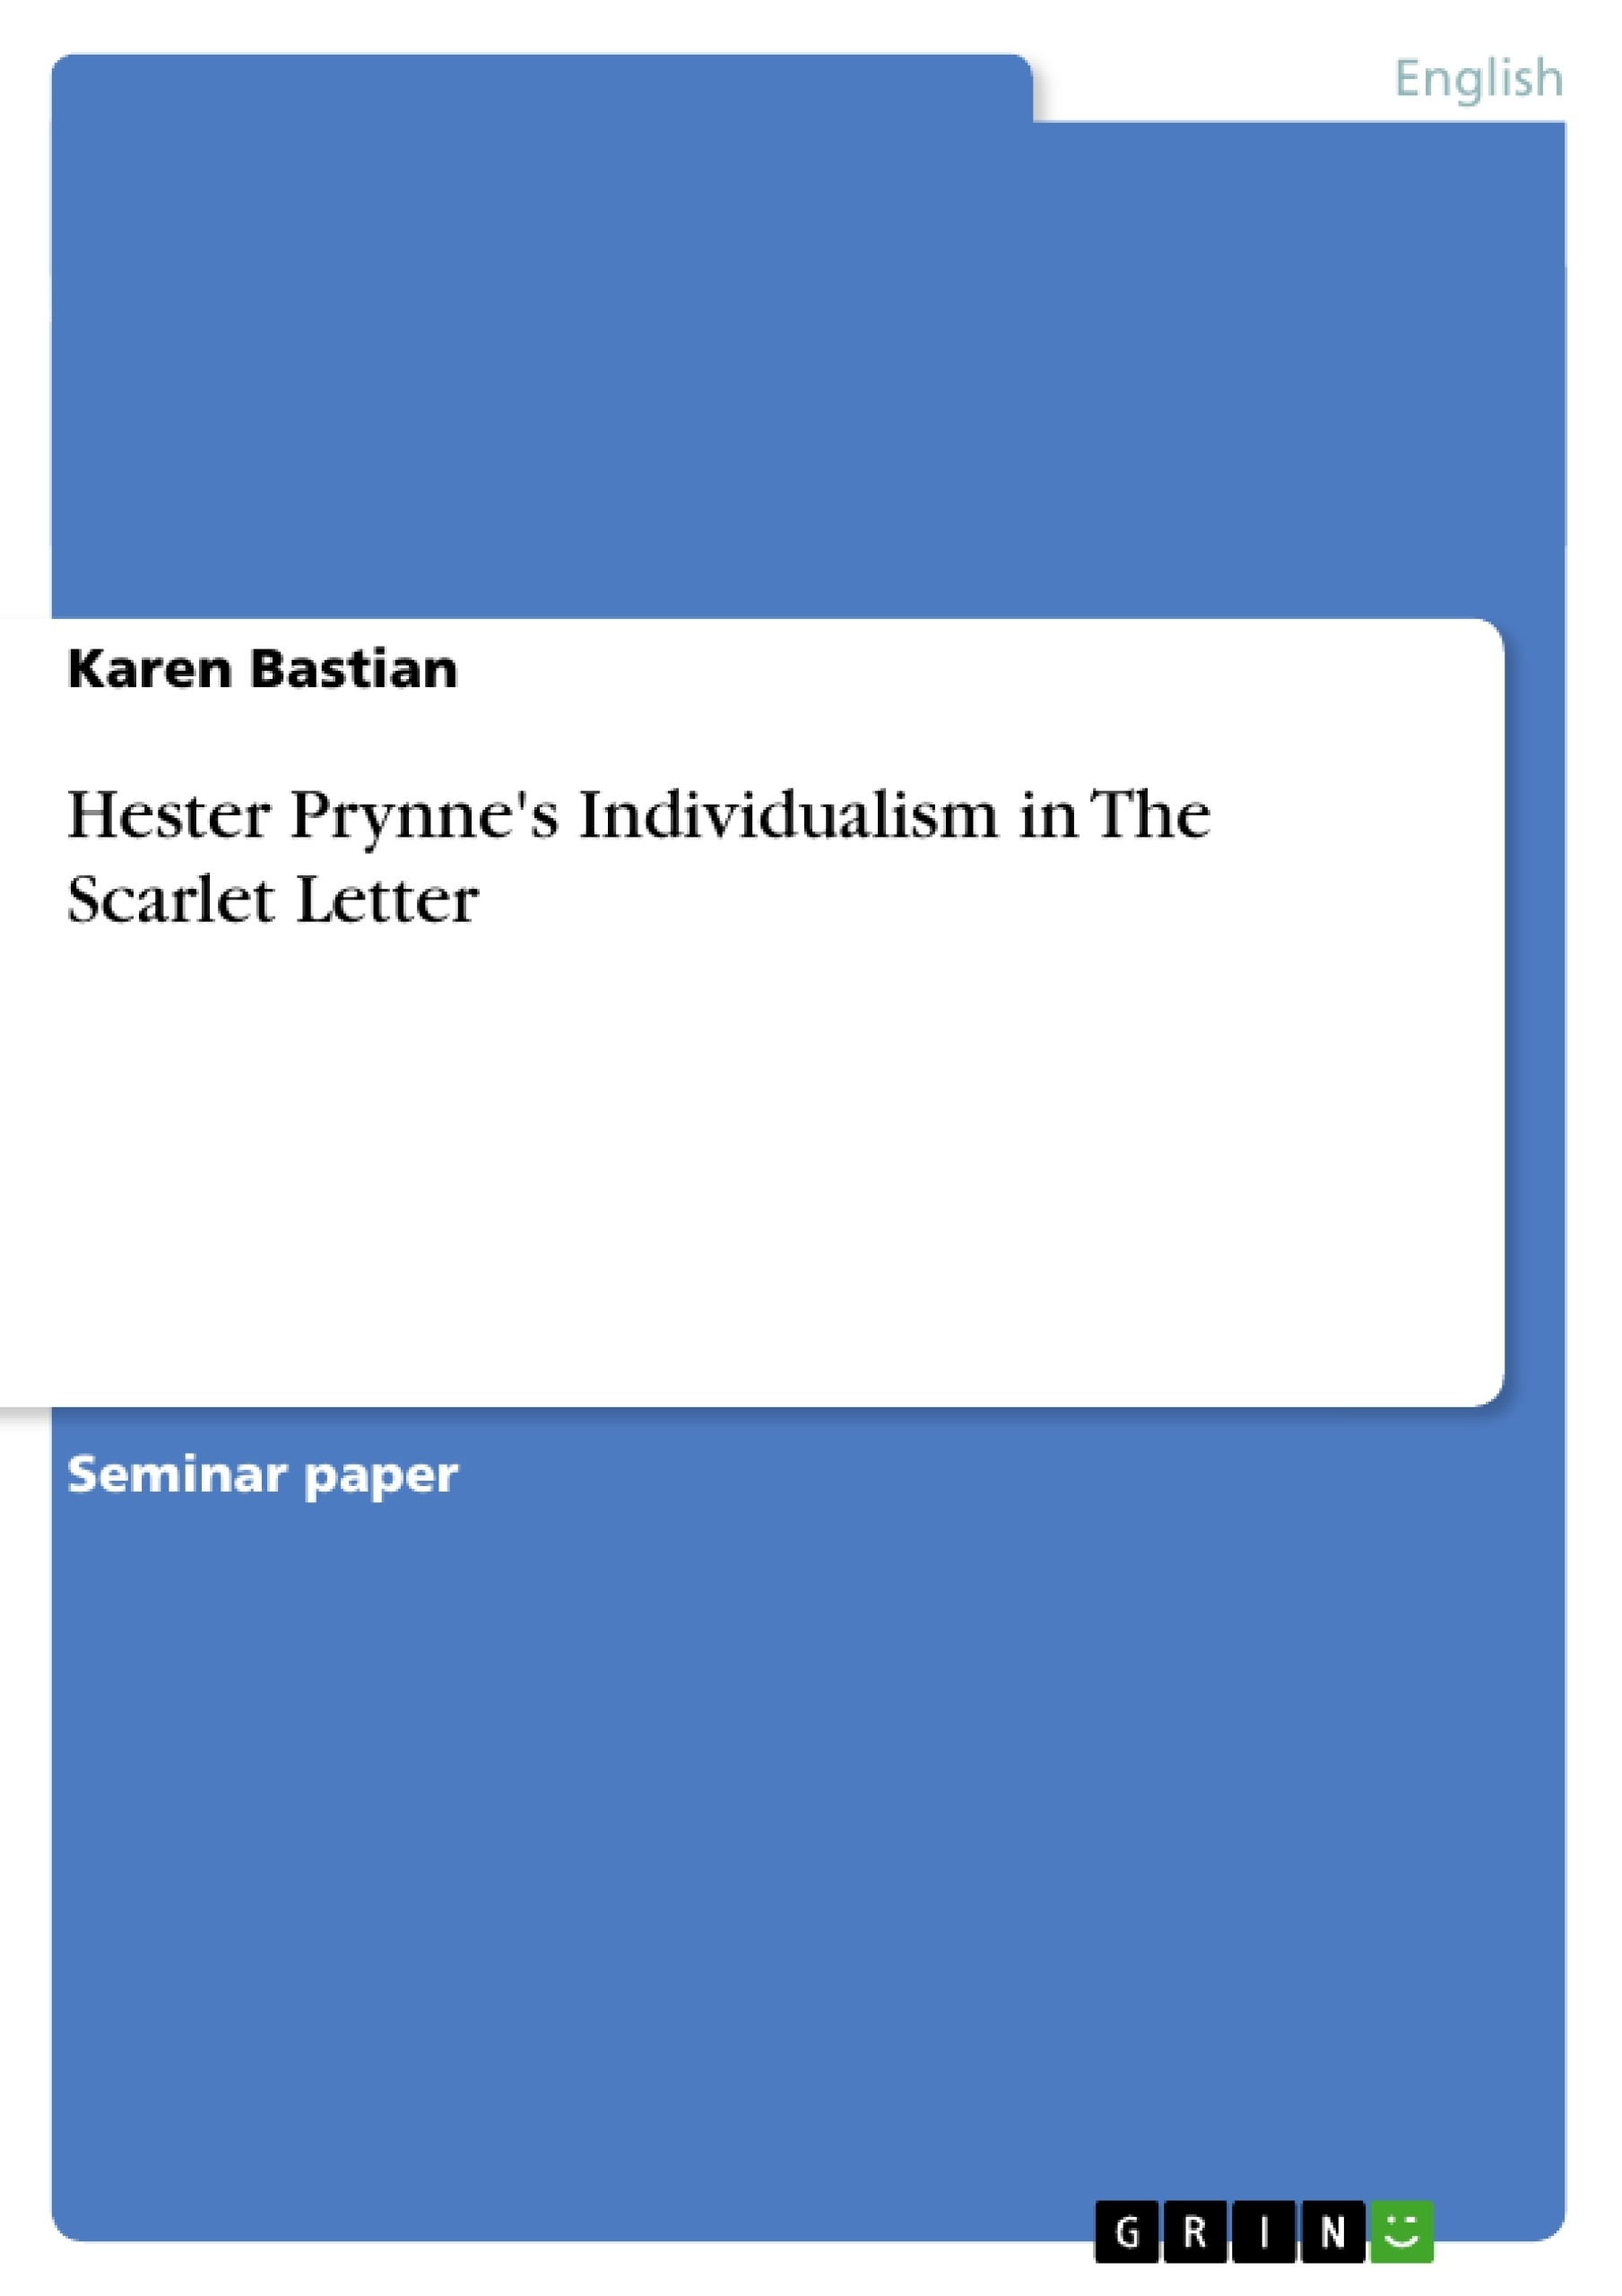 dissertation microsoft publisher scarlet letter essay topics pearl hester prynne s individualism in the scarlet letter self publishing at